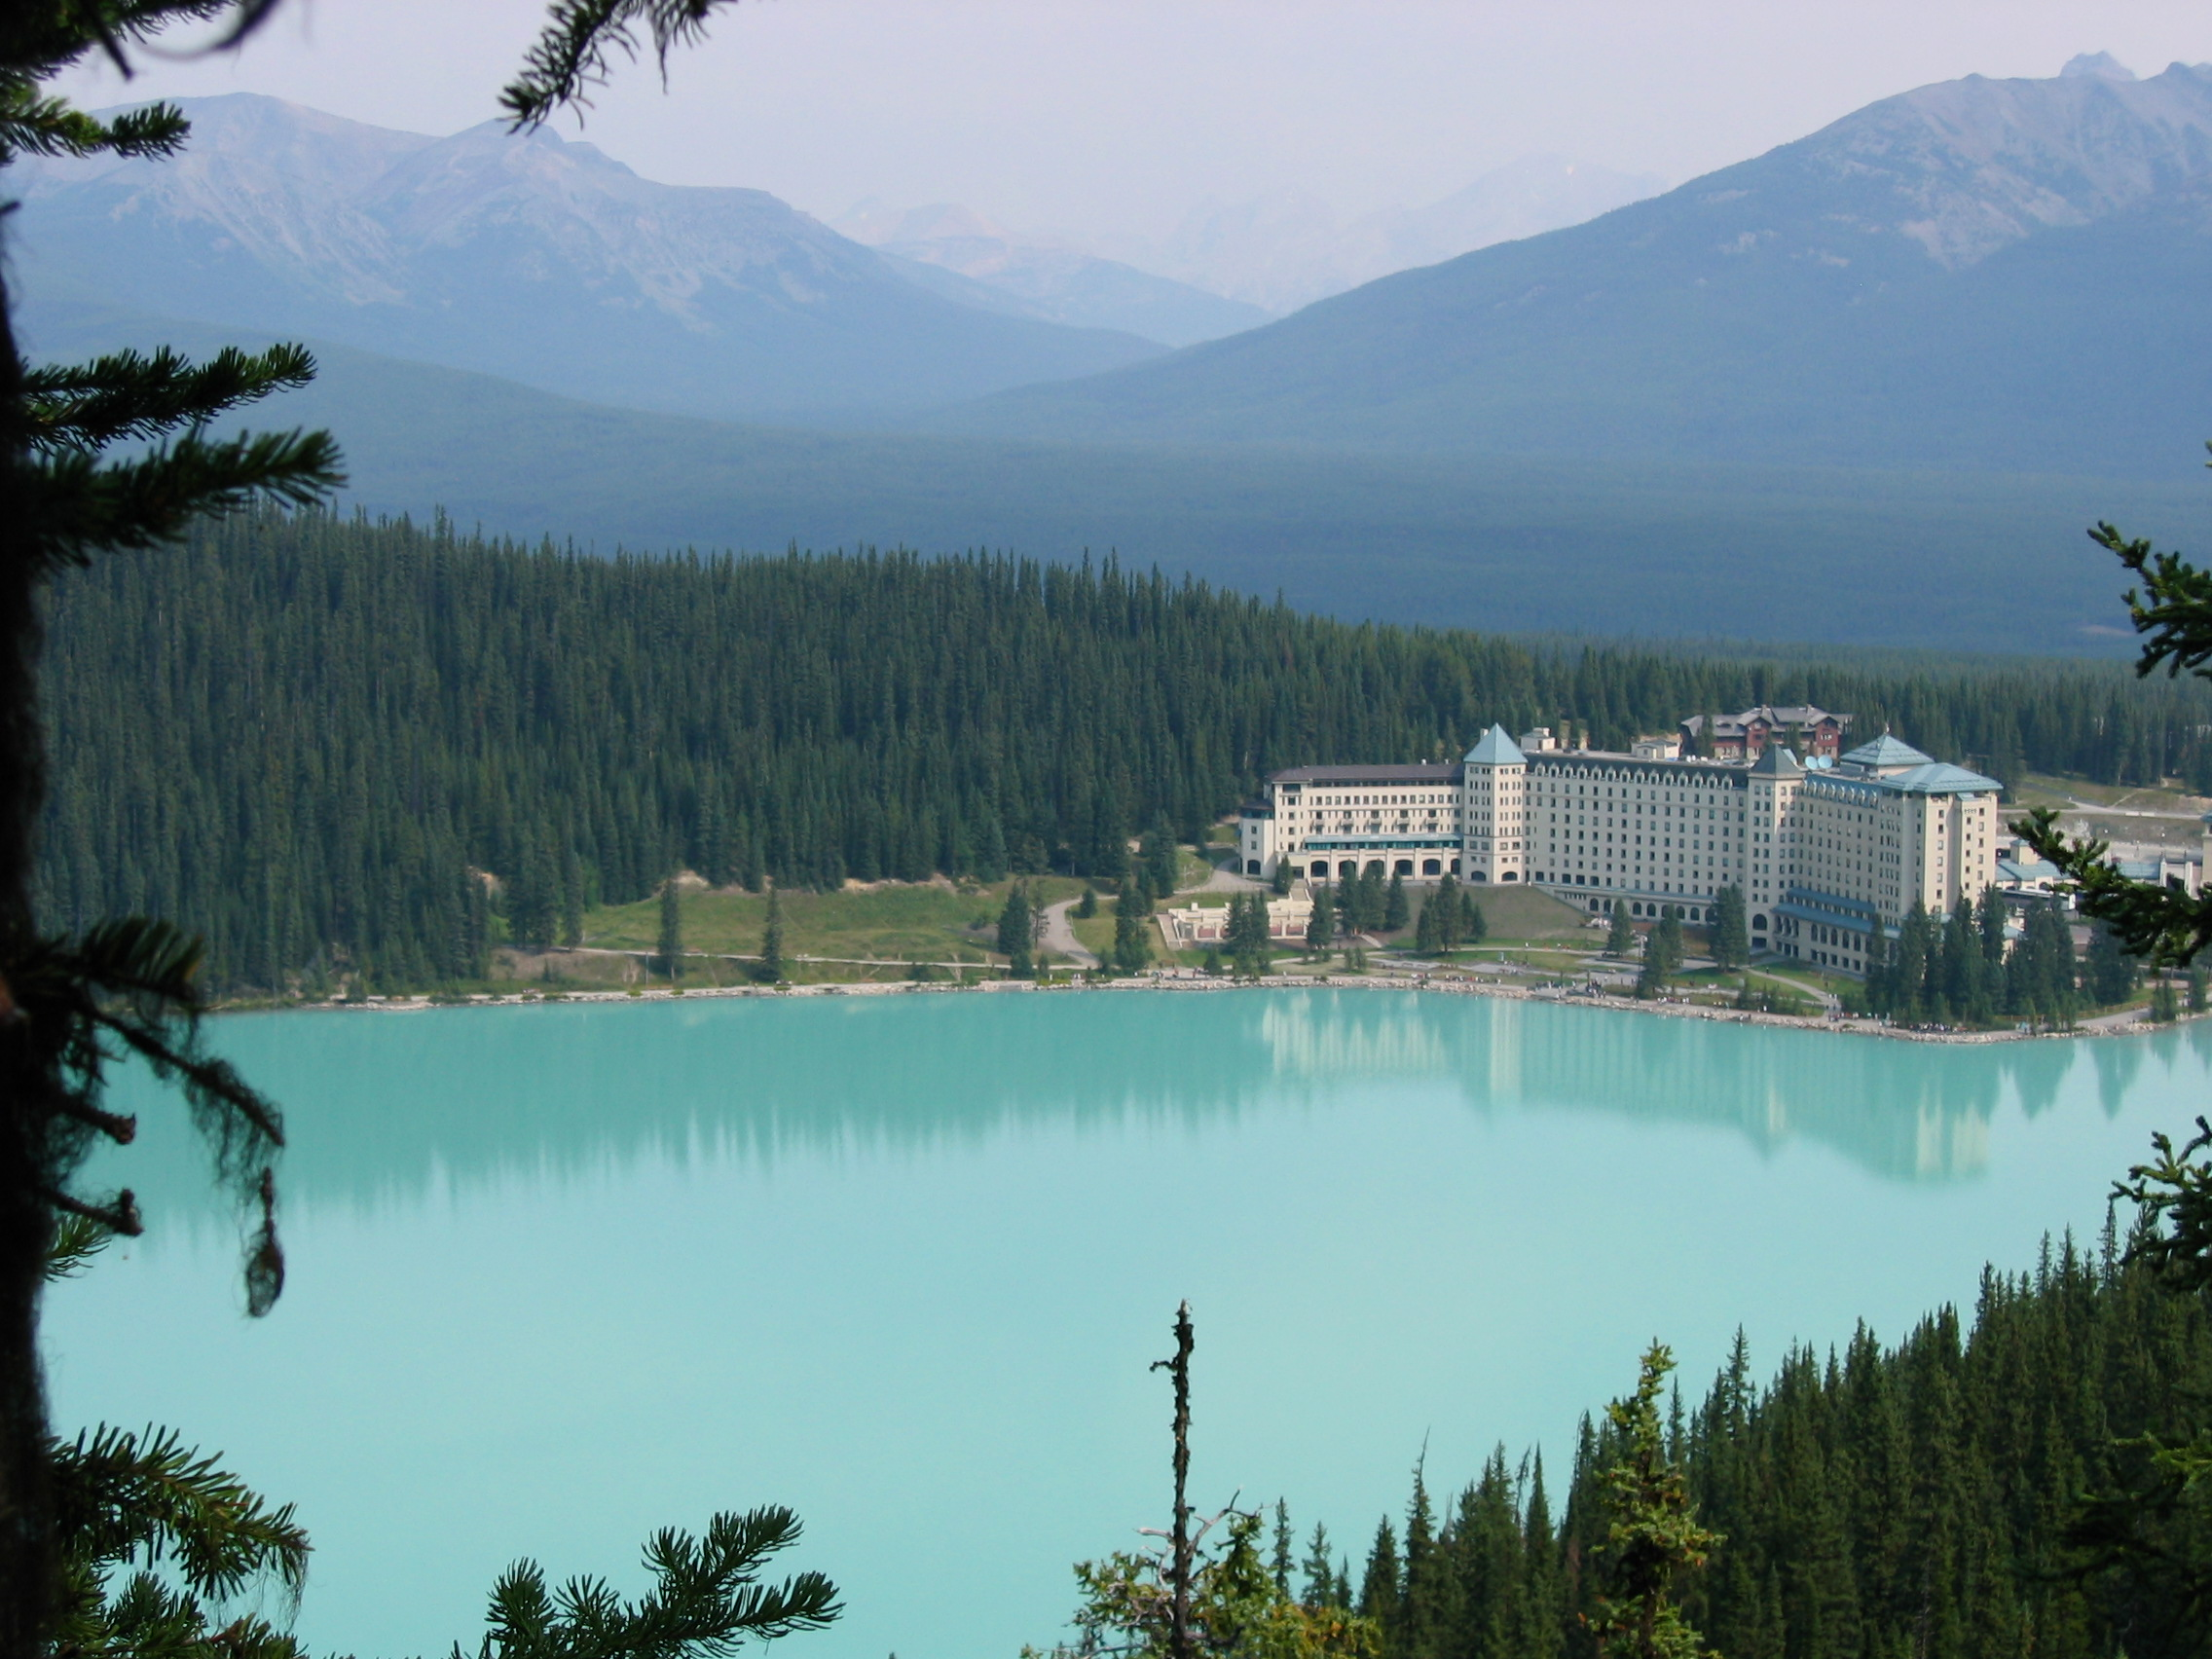 """The Chateau Lake Louise, where we stayed. I LOVED this place and would describe the atmosphere as """"comfortable elegance."""" Plus, walking out the back door of the hotel feels like stepping into a postcard."""